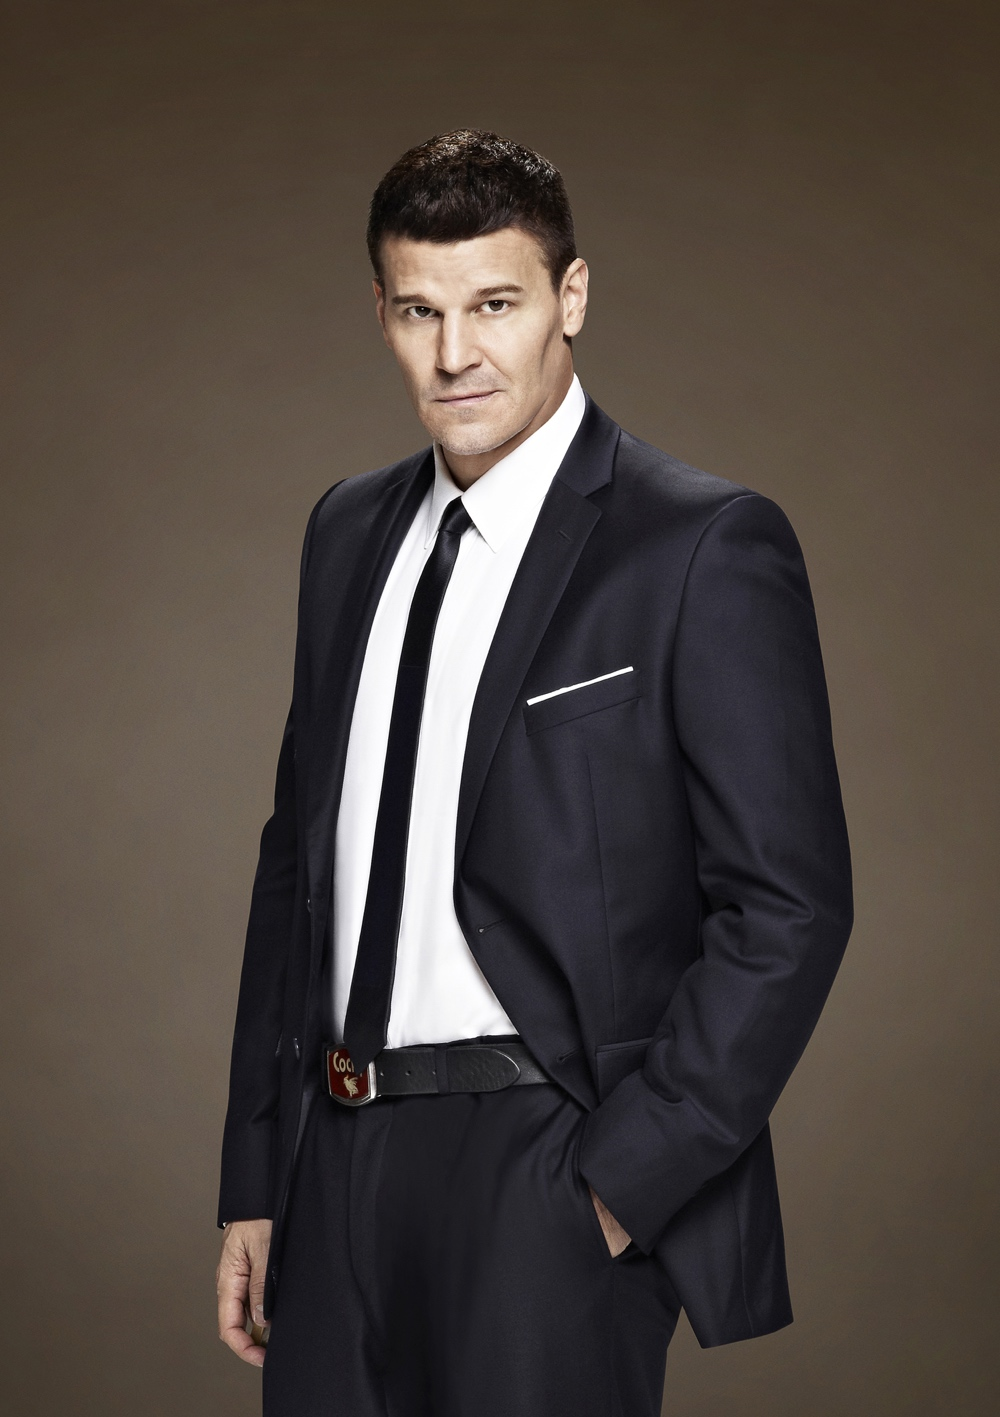 david boreanaz bones season 9 - photo #32